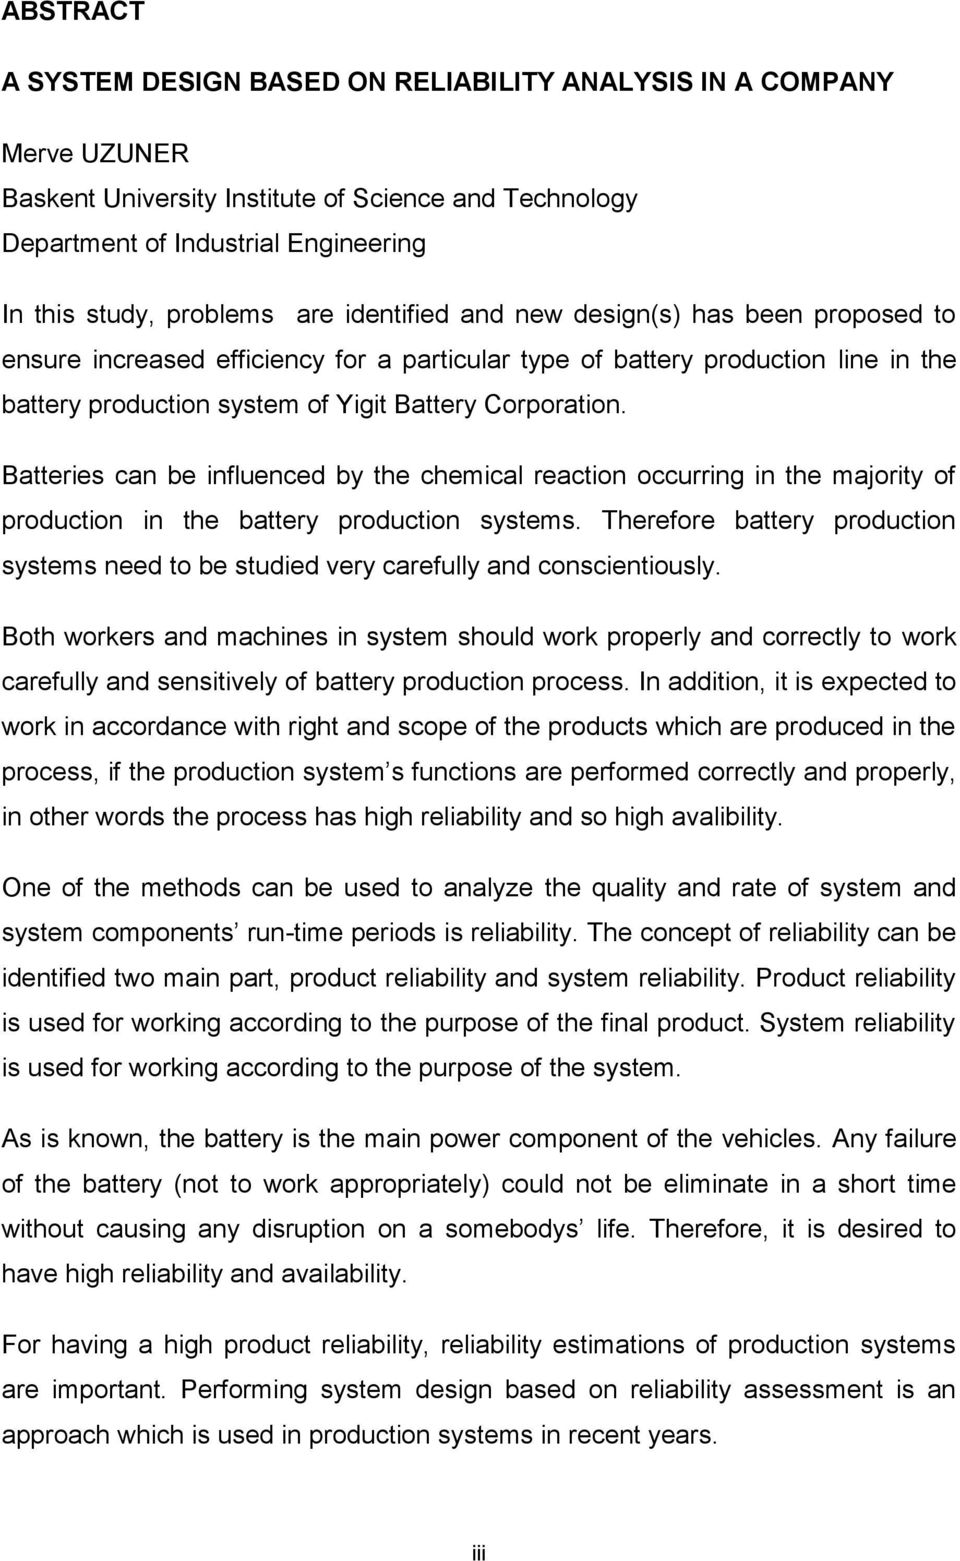 Batteries can be influenced by the chemical reaction occurring in the majority of production in the battery production systems.